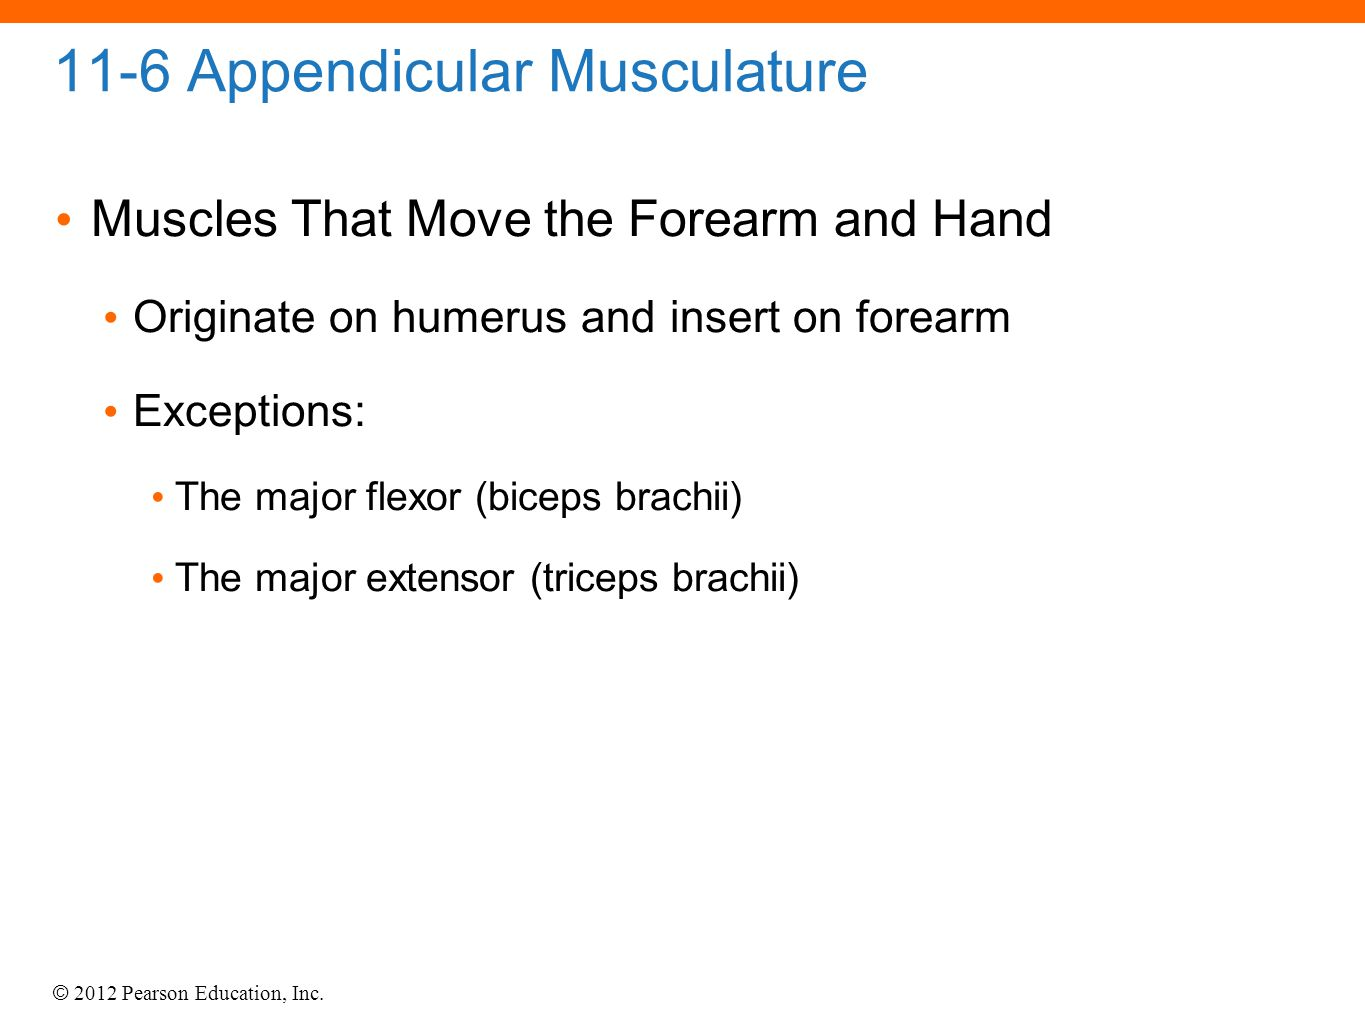 © 2012 Pearson Education, Inc. 11-6 Appendicular Musculature Muscles That Move the Forearm and Hand Originate on humerus and insert on forearm Excepti